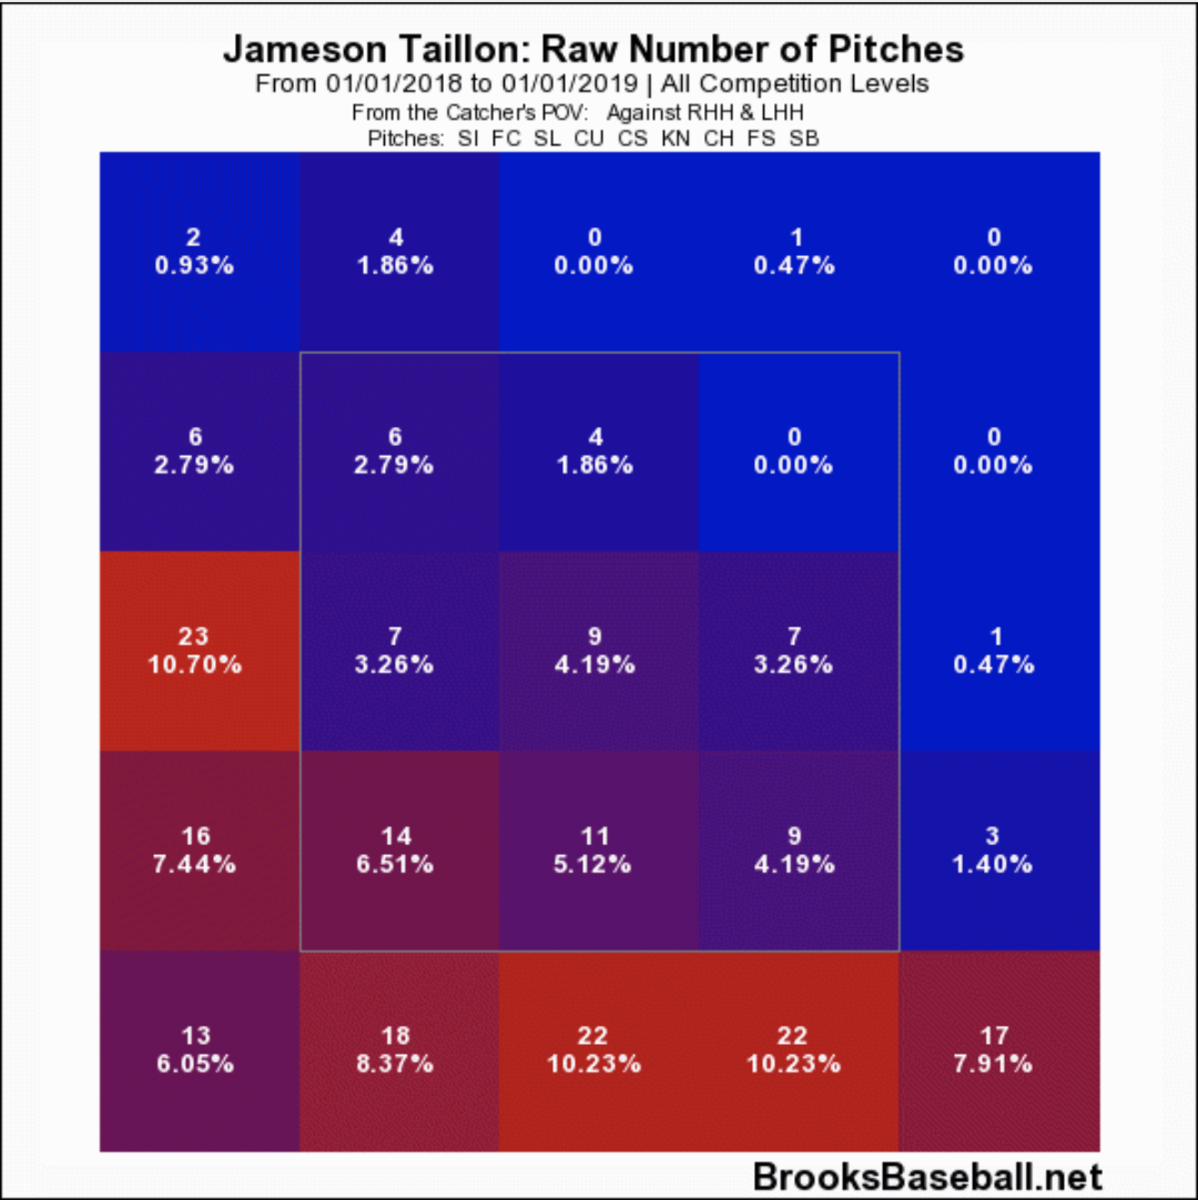 taillon_pic2.png